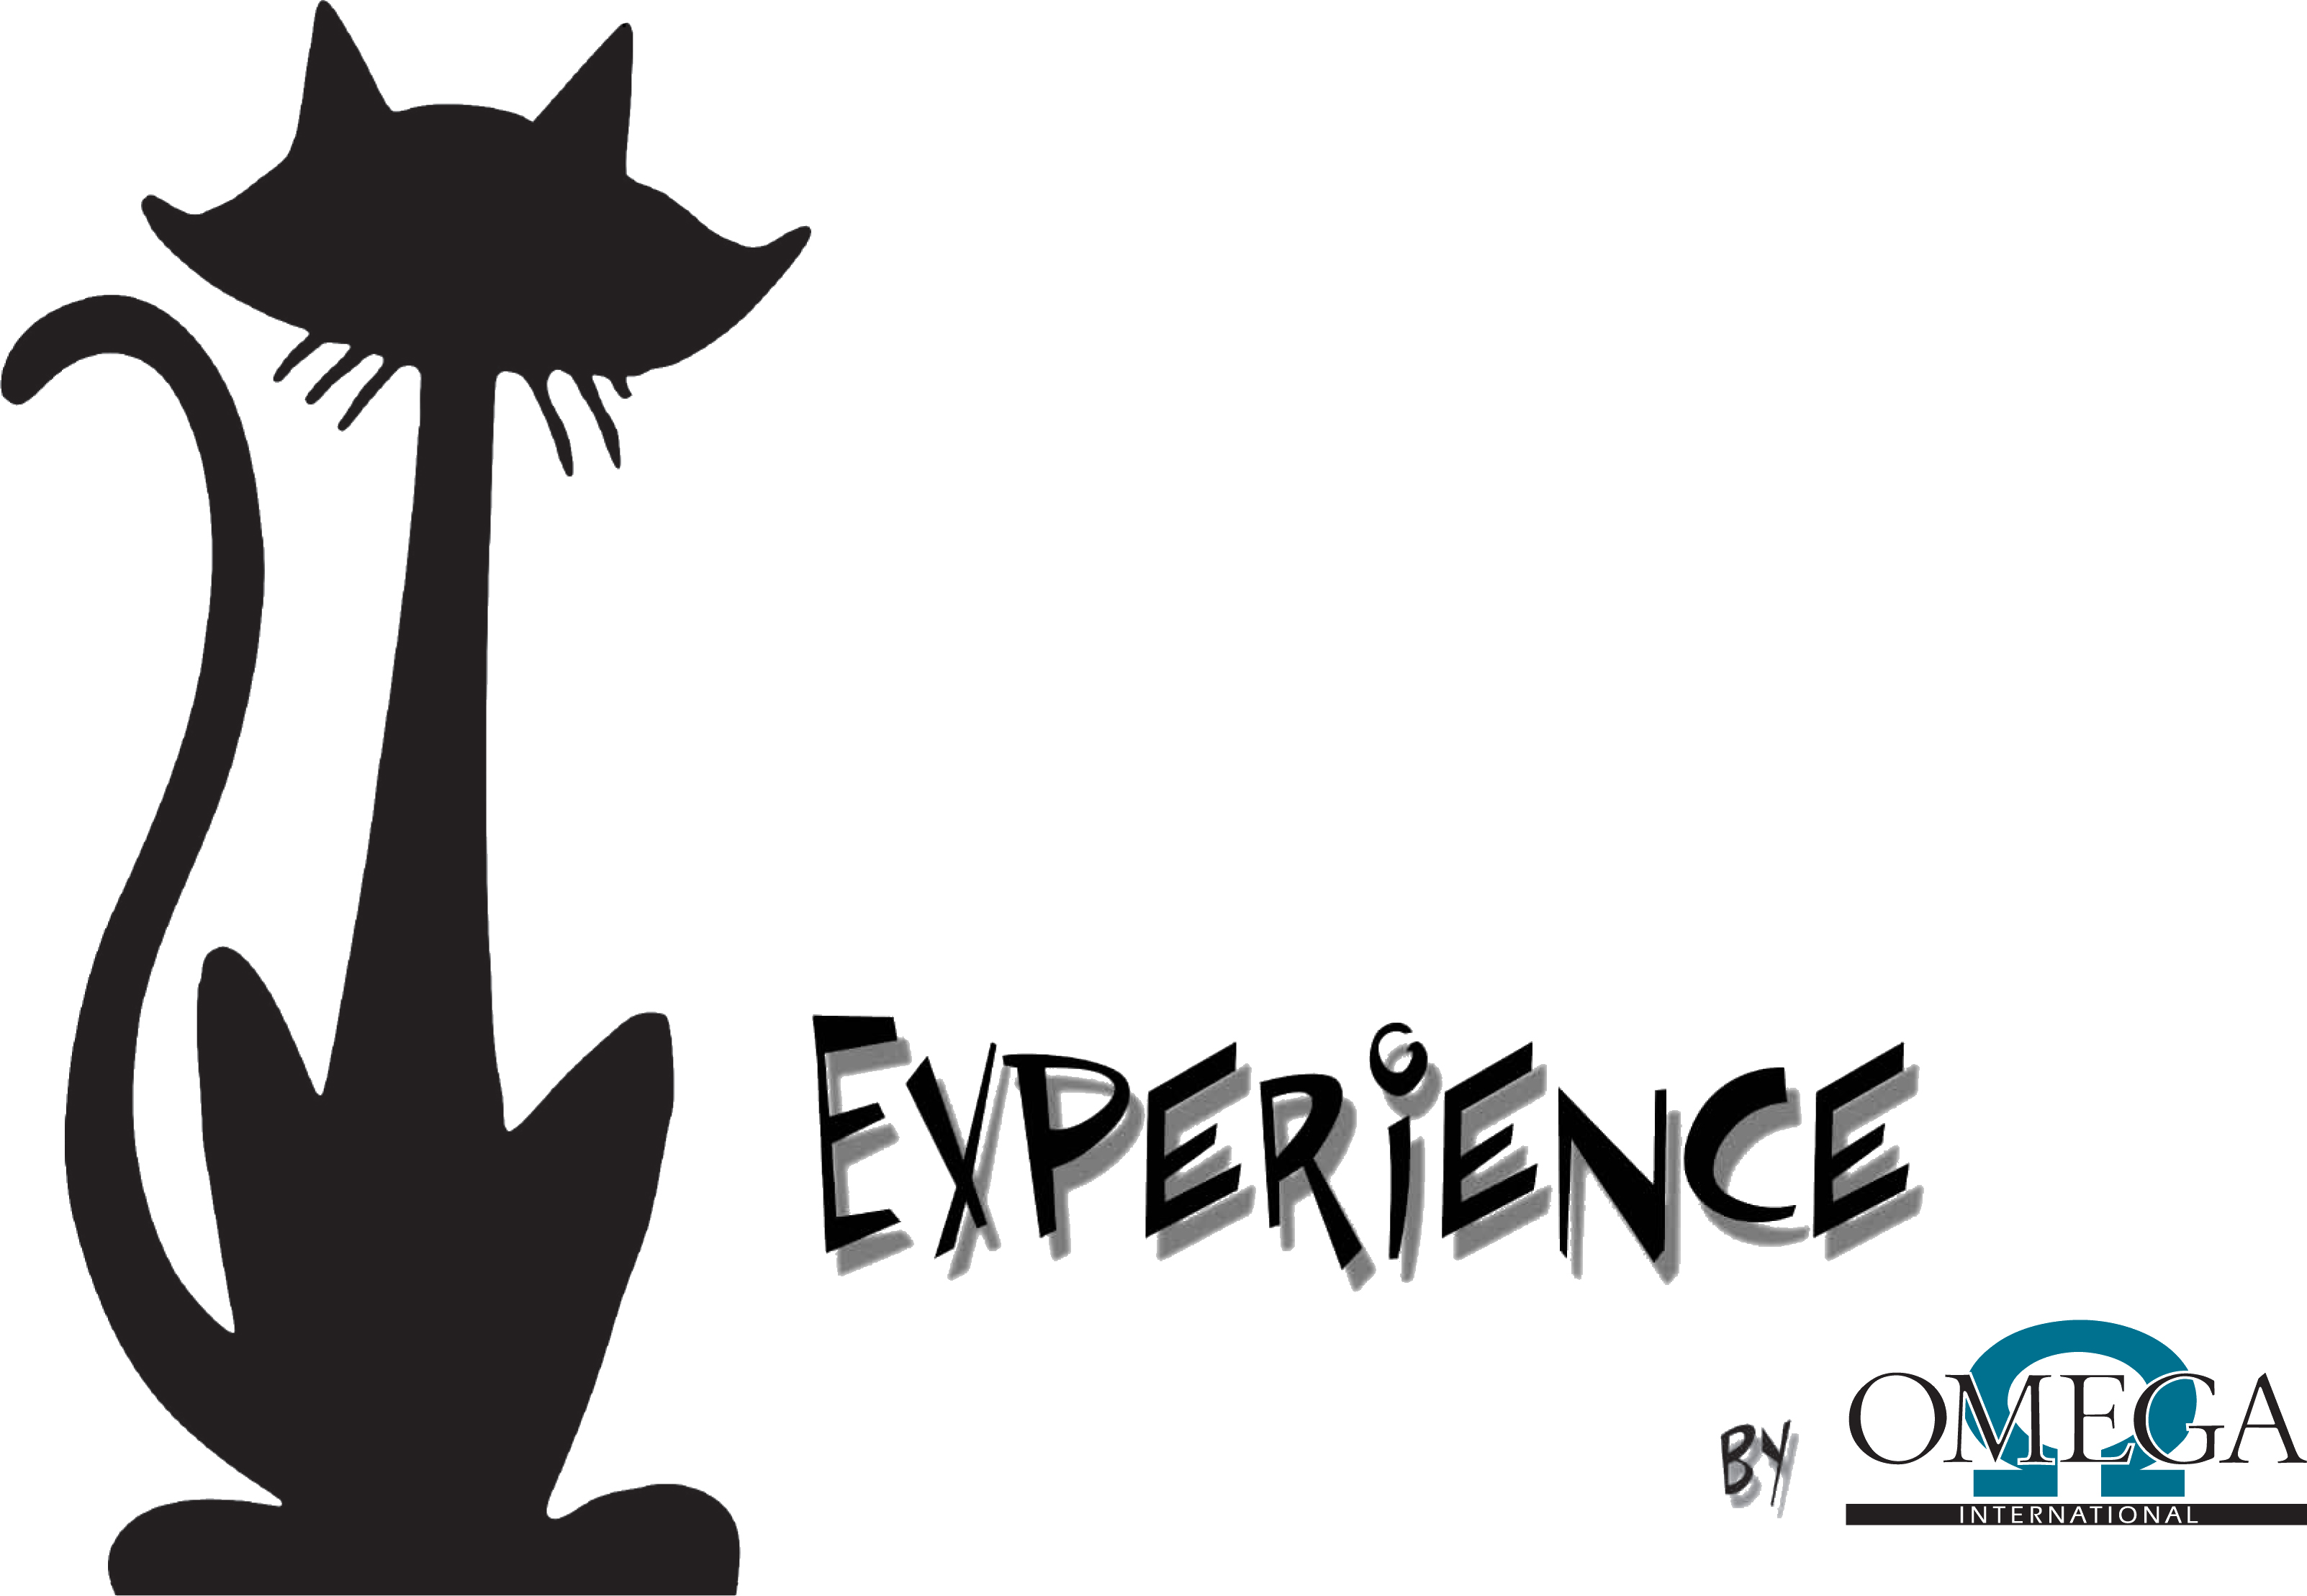 Experience by Omega